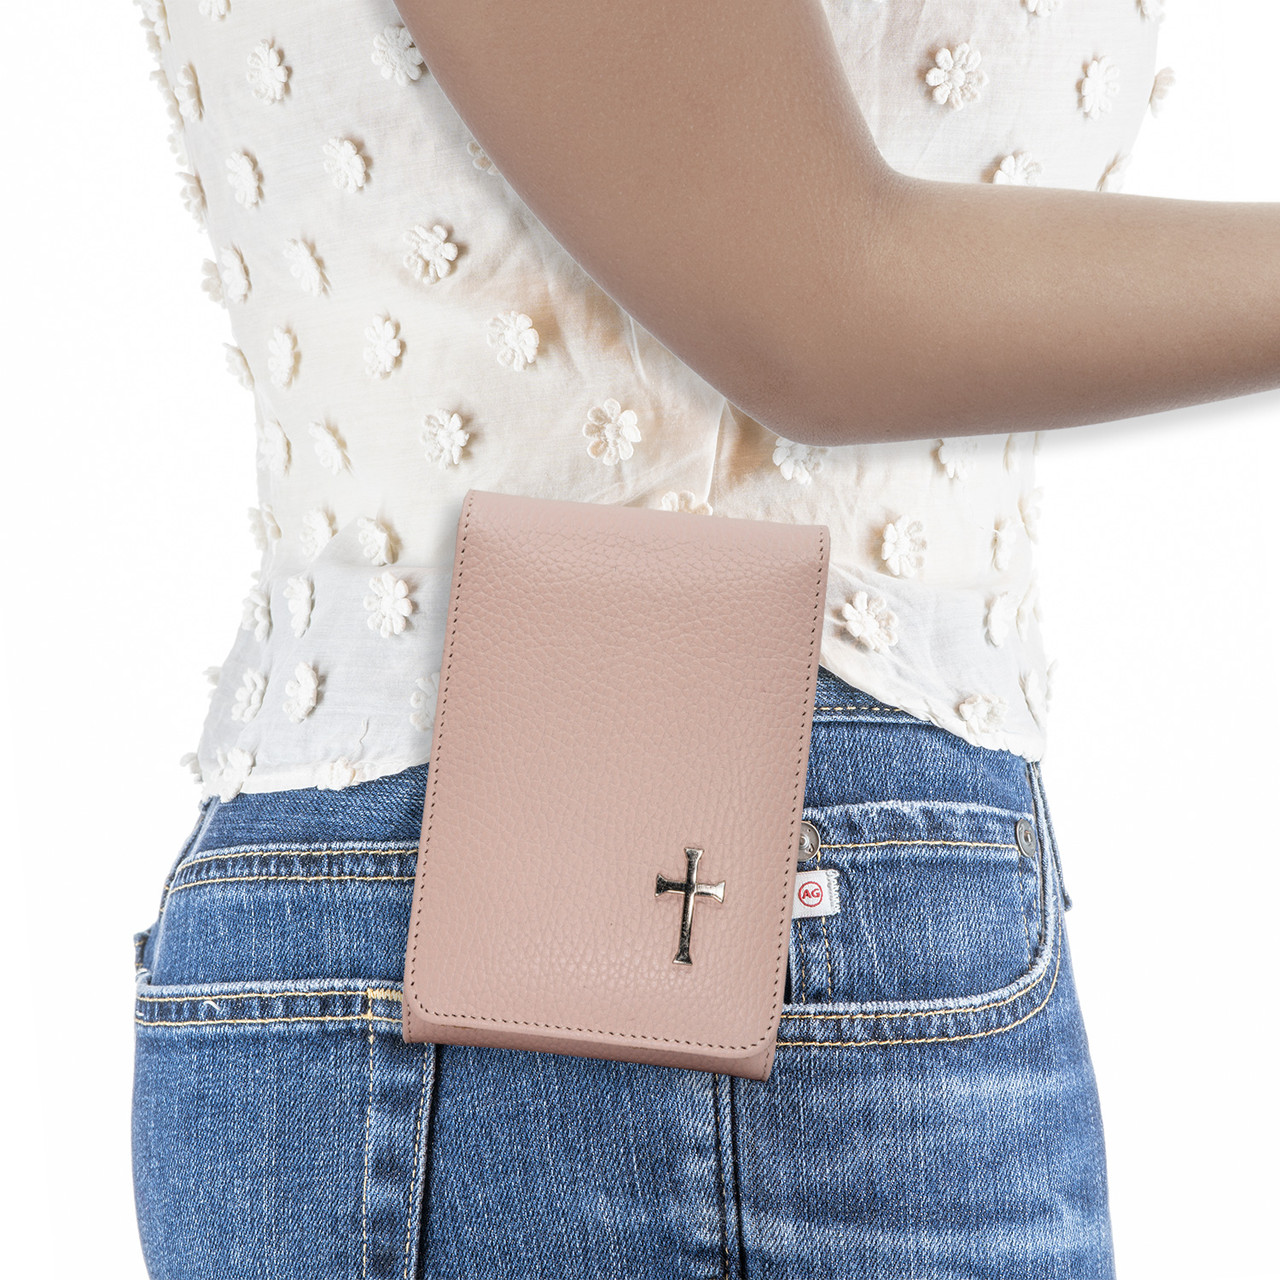 Ruger LC9 Pink Carry Faithfully Cross Holster